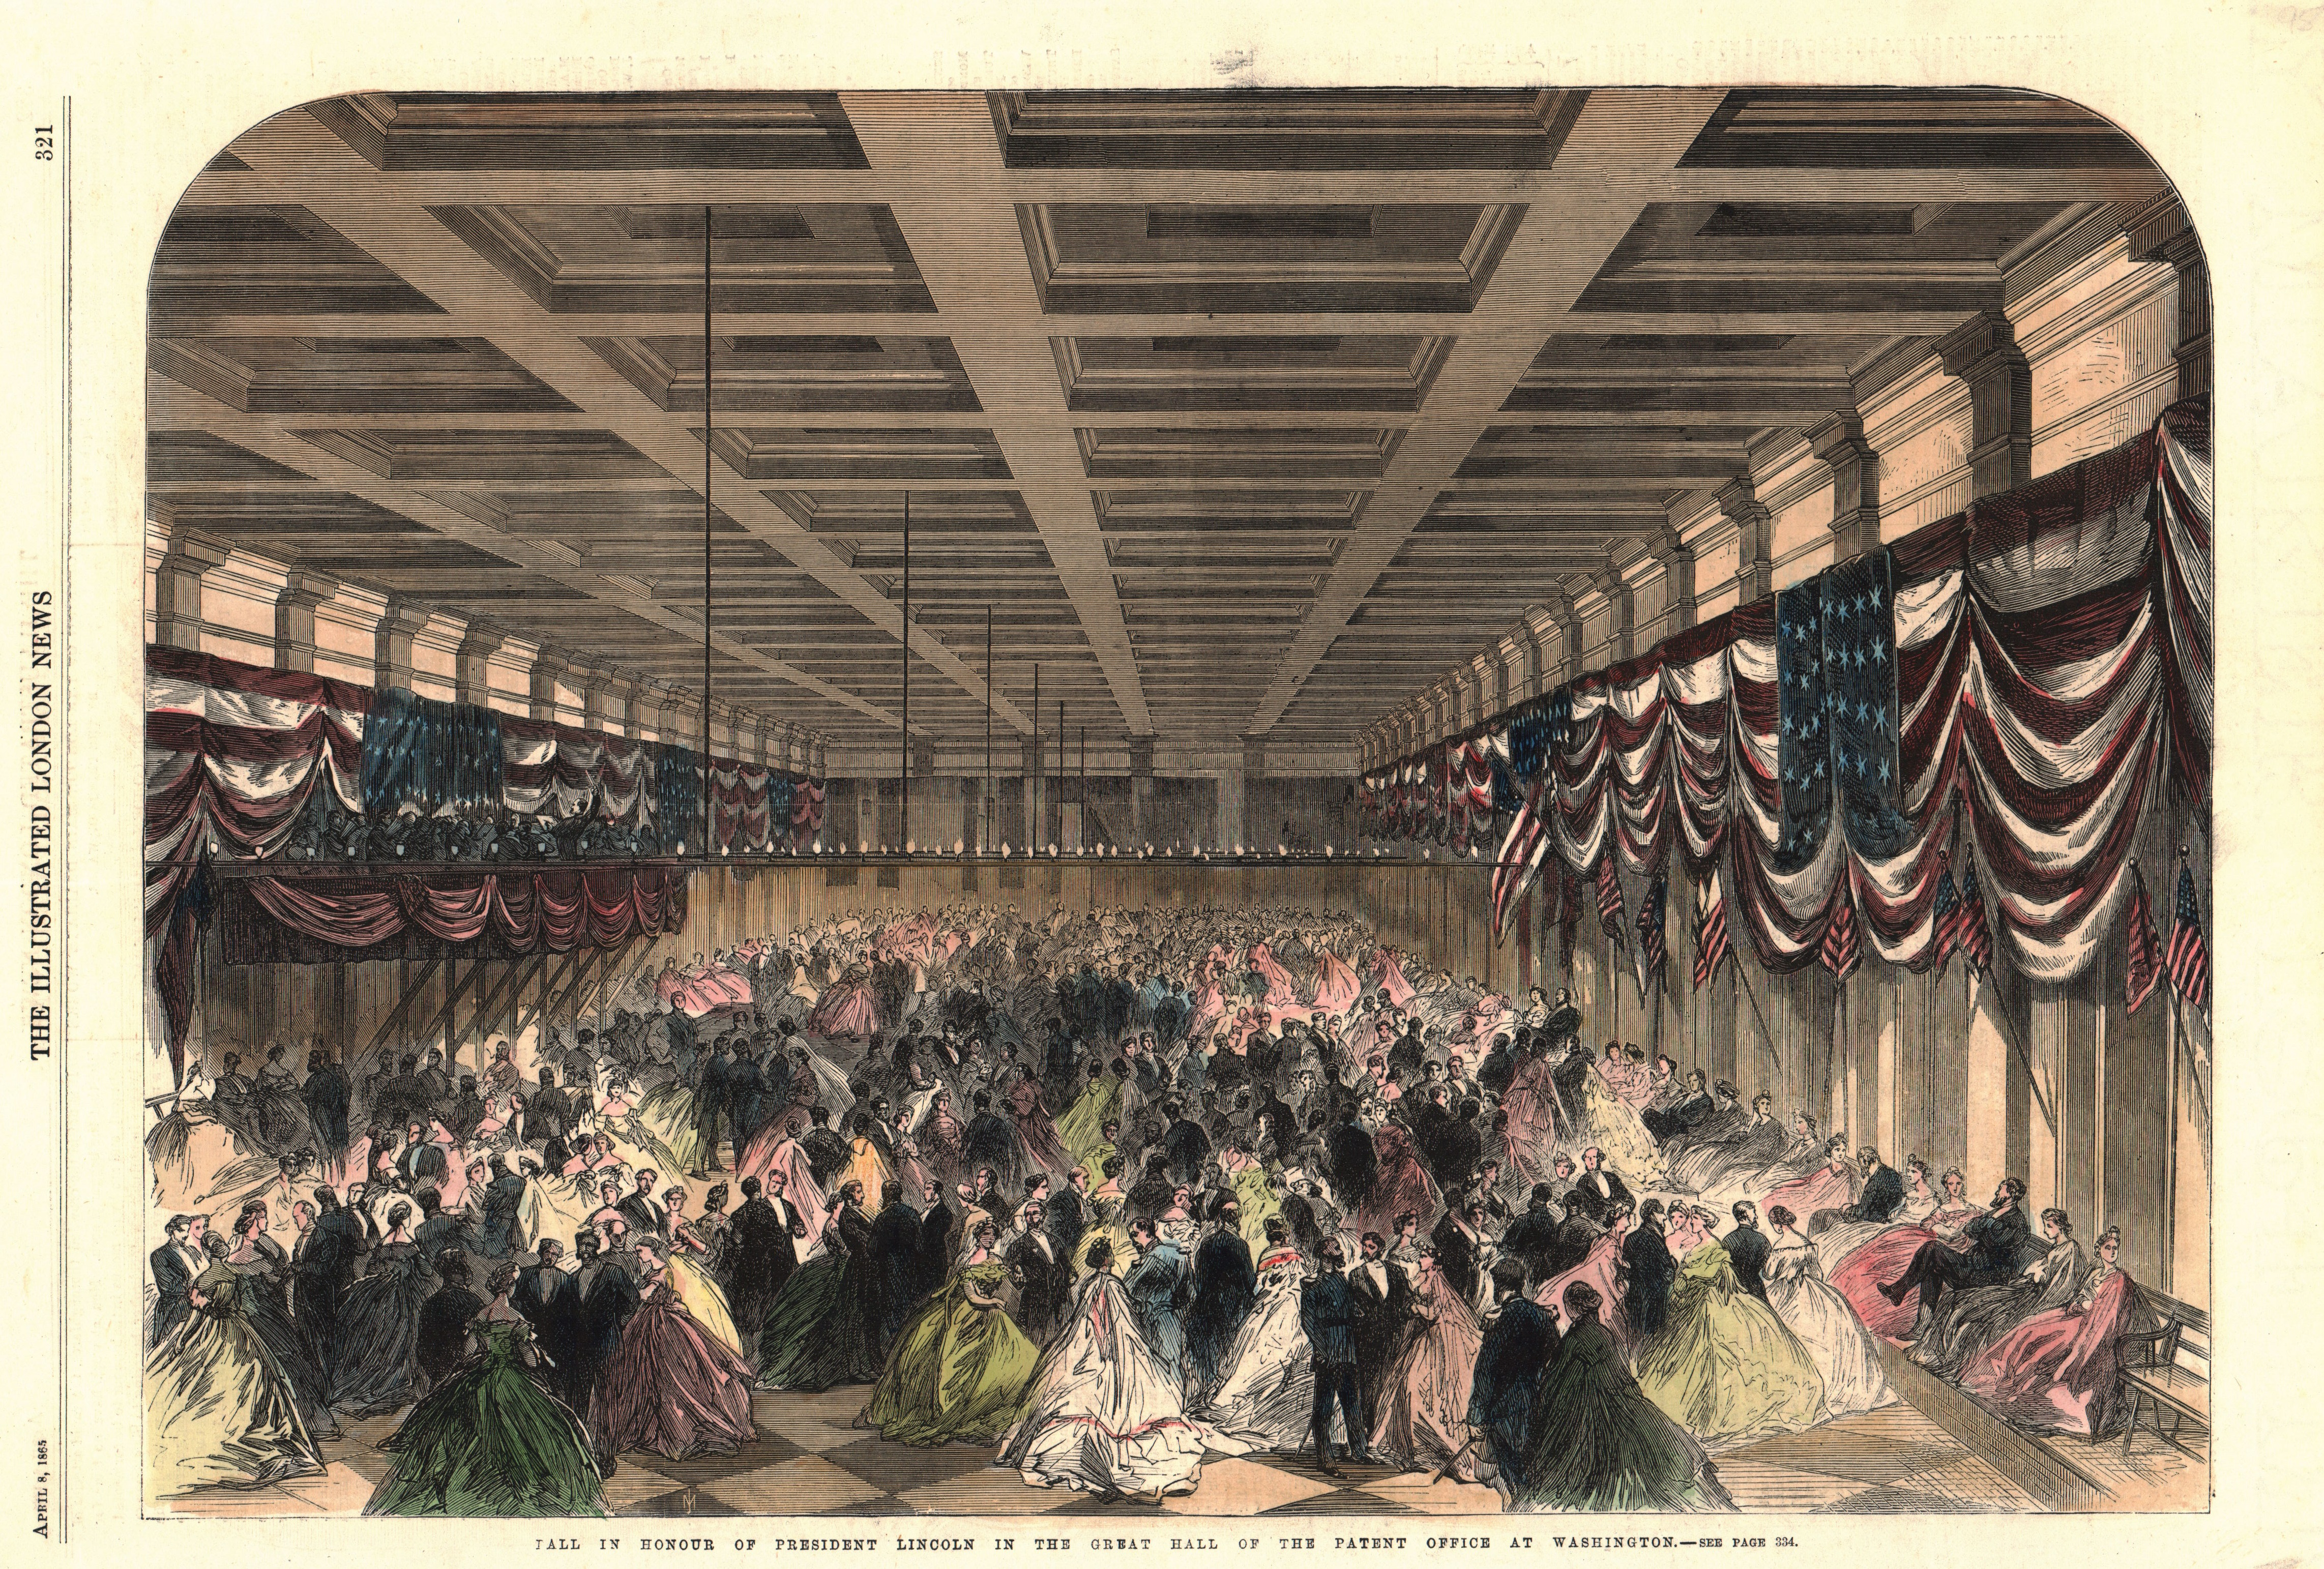 Ball in Honor of President Lincoln